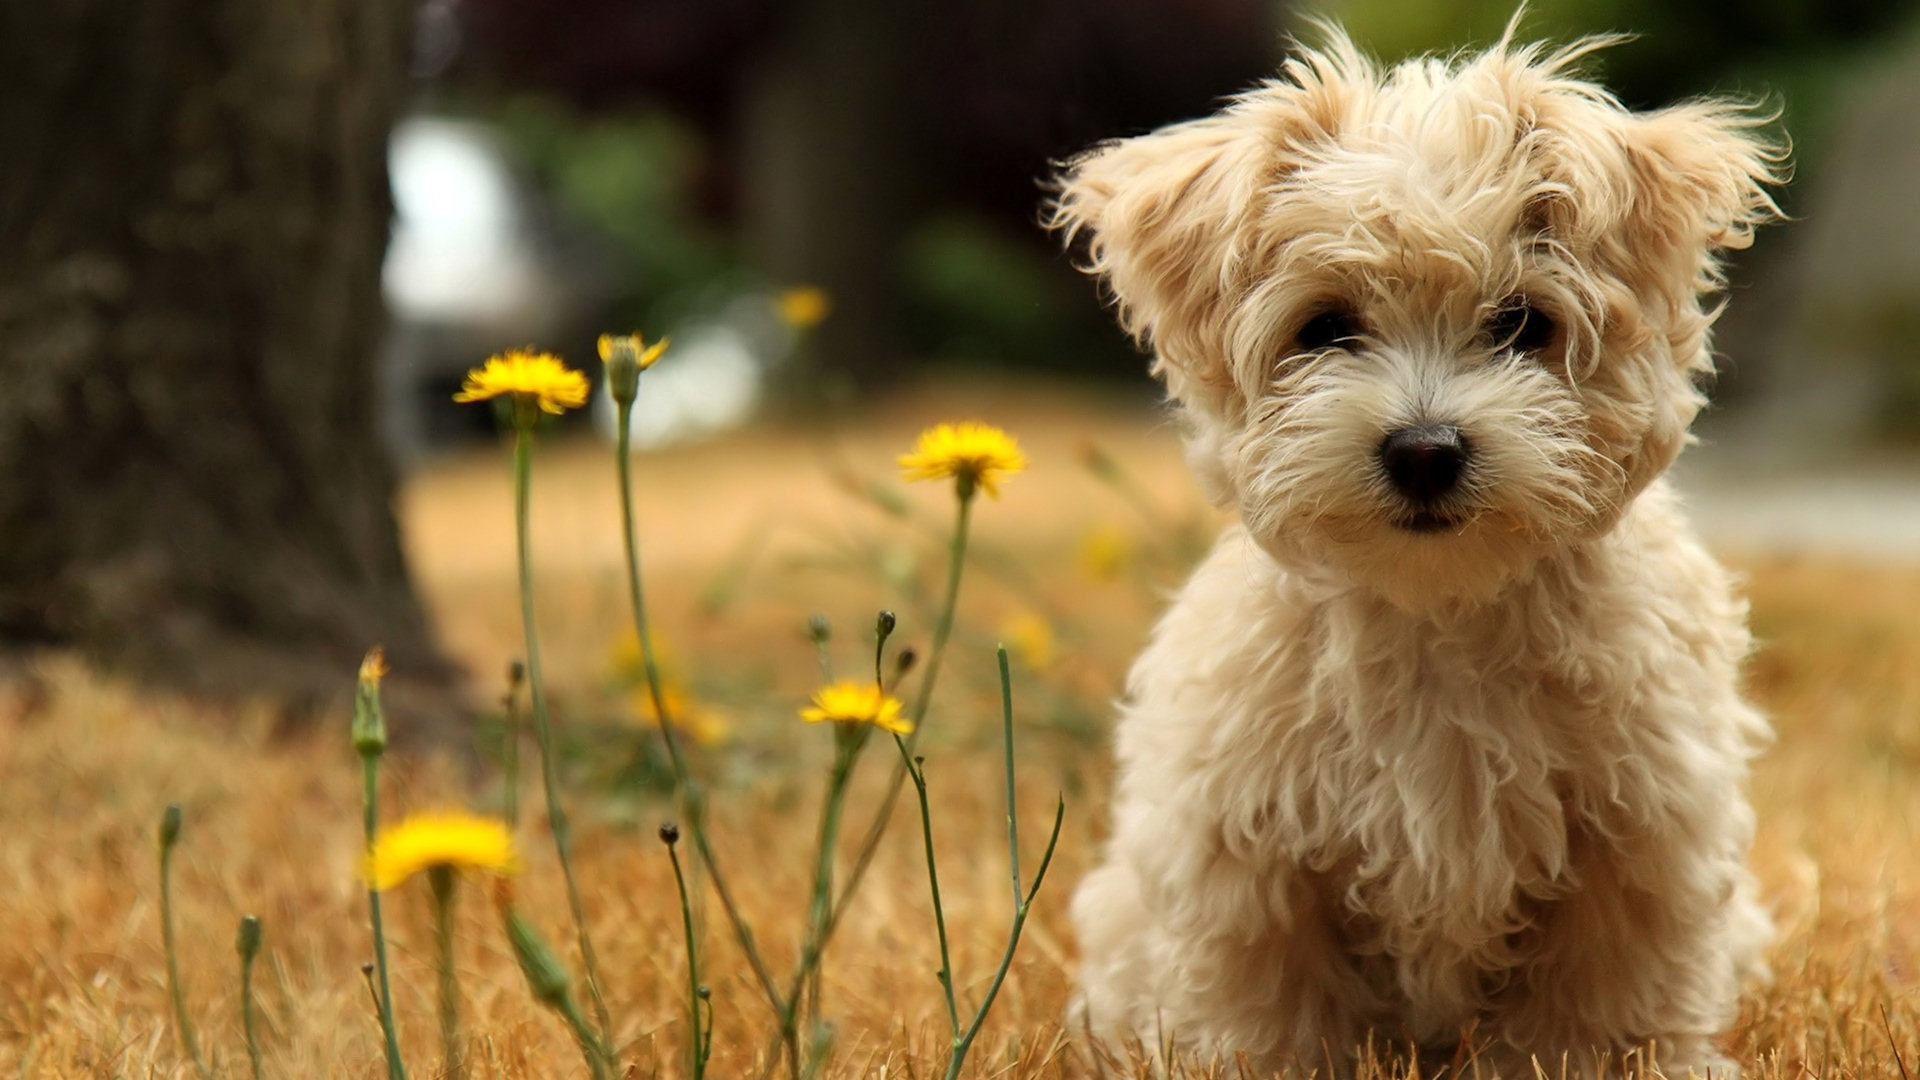 Dog Wallpaper 12